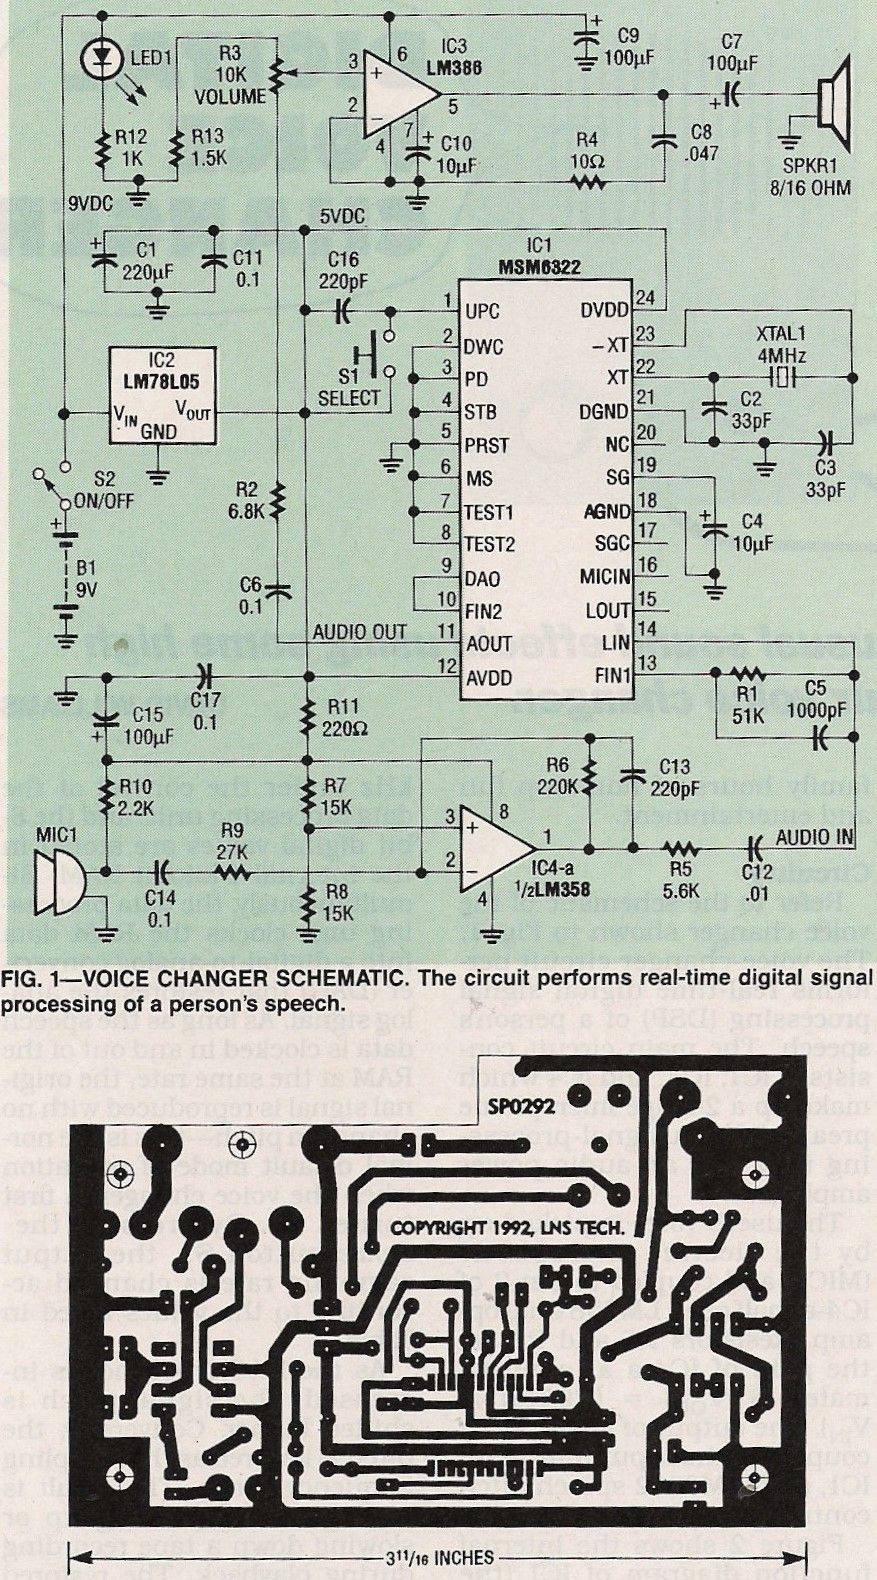 Pin By Jawad Aslam On Arduino Pinterest Electronics Projects Project Circuit Diagram Engineering Amp Dc Menu Log Computers Libros Technology High Tech Gadgets